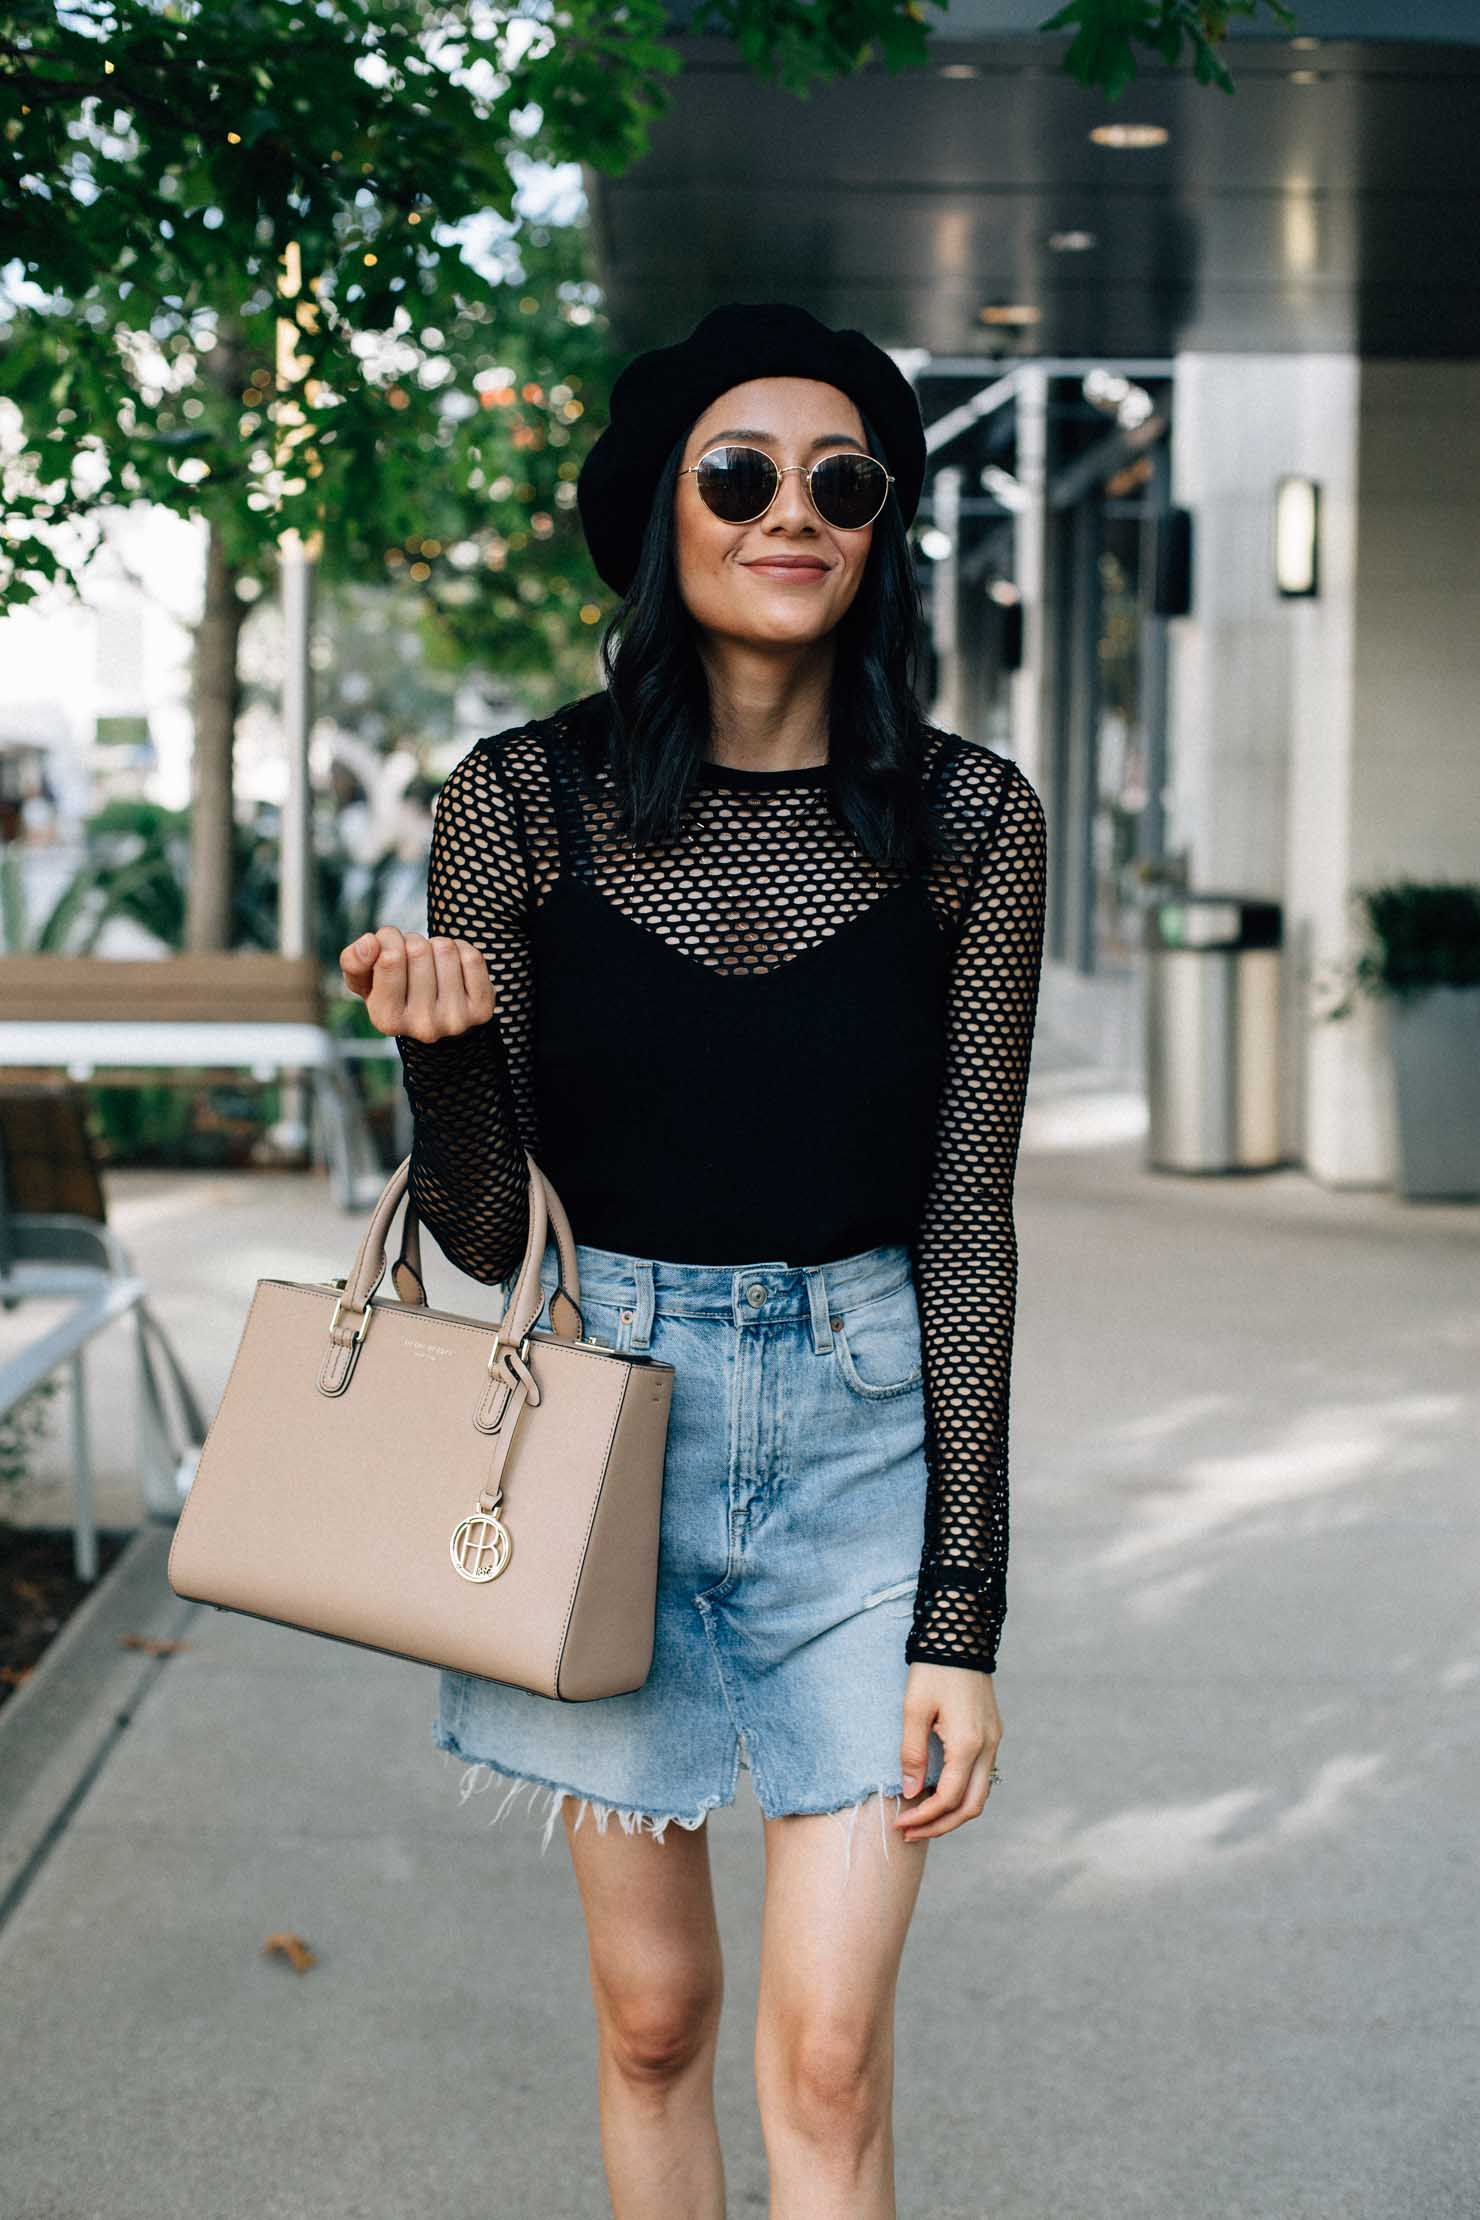 Fashion blogger Lilly Beltran from Daily Craving wearing a long sleeve mesh top and a black beret